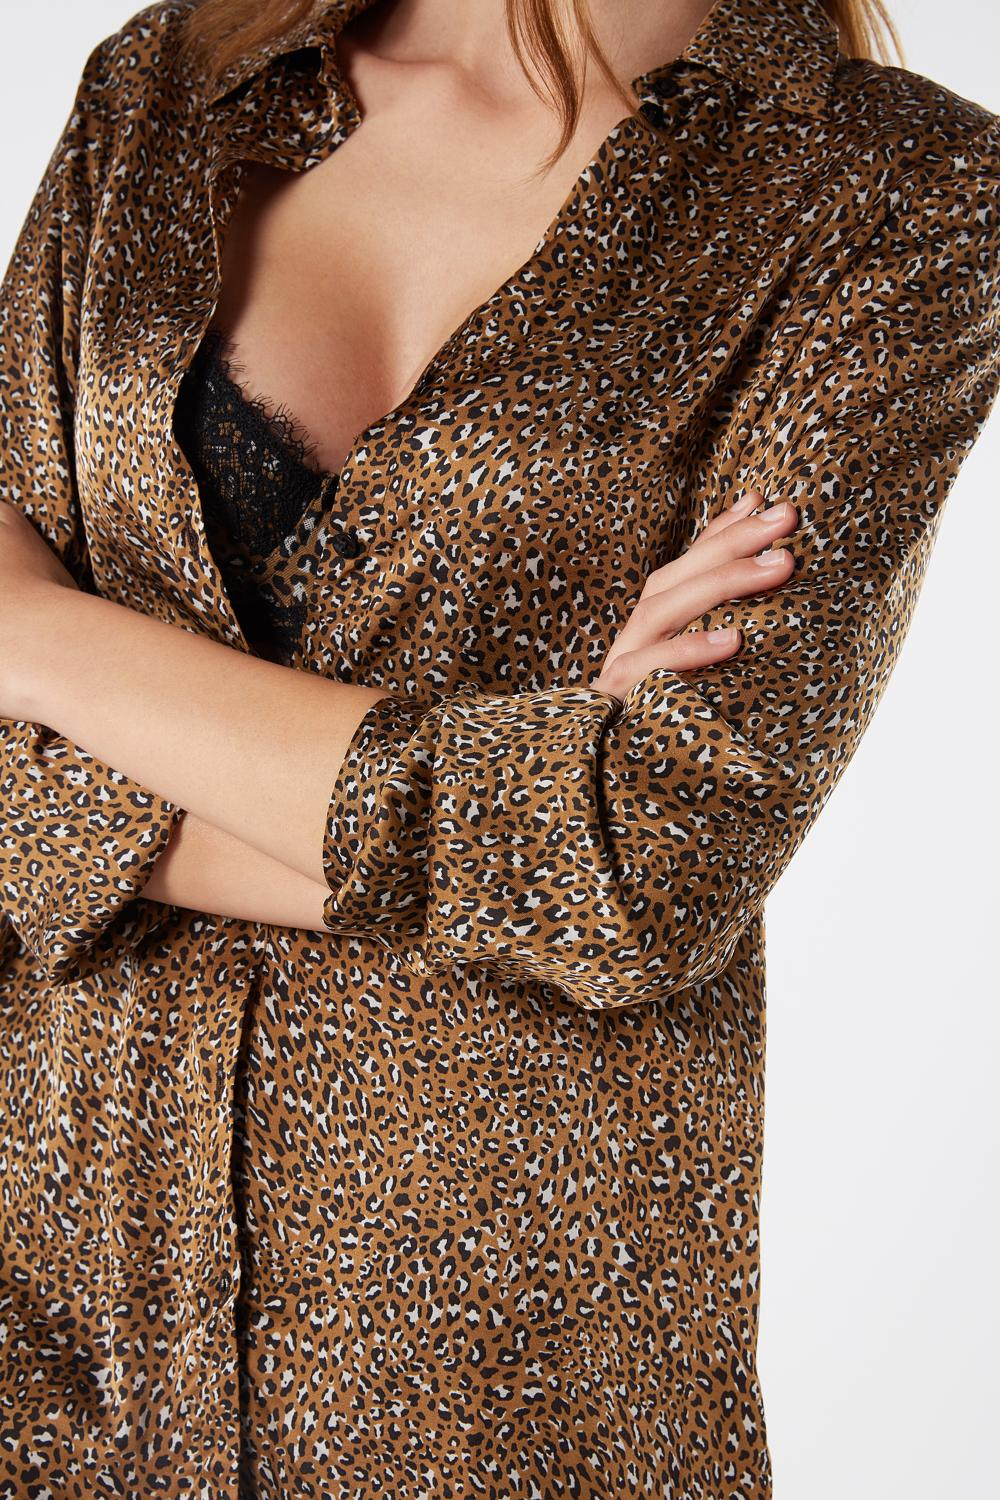 Wild Animalier Viscose Satin Long-sleeved Shirt